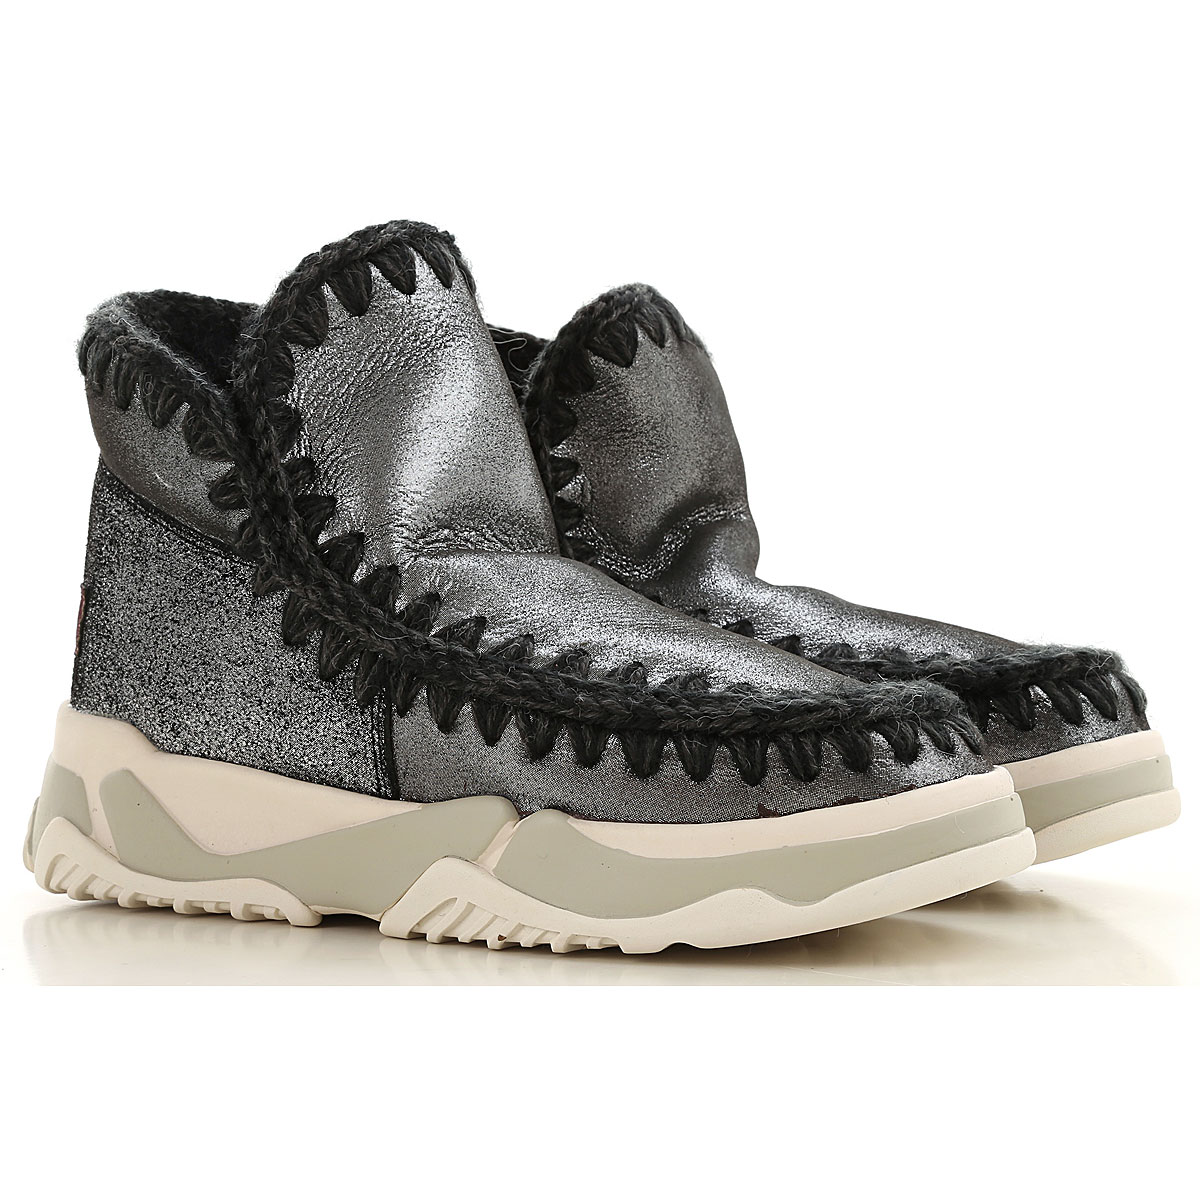 Mou Boots for Women, Booties On Sale in Outlet, Black, Suede leather, 2019, EUR 36 - UK 3 - USA 5.5